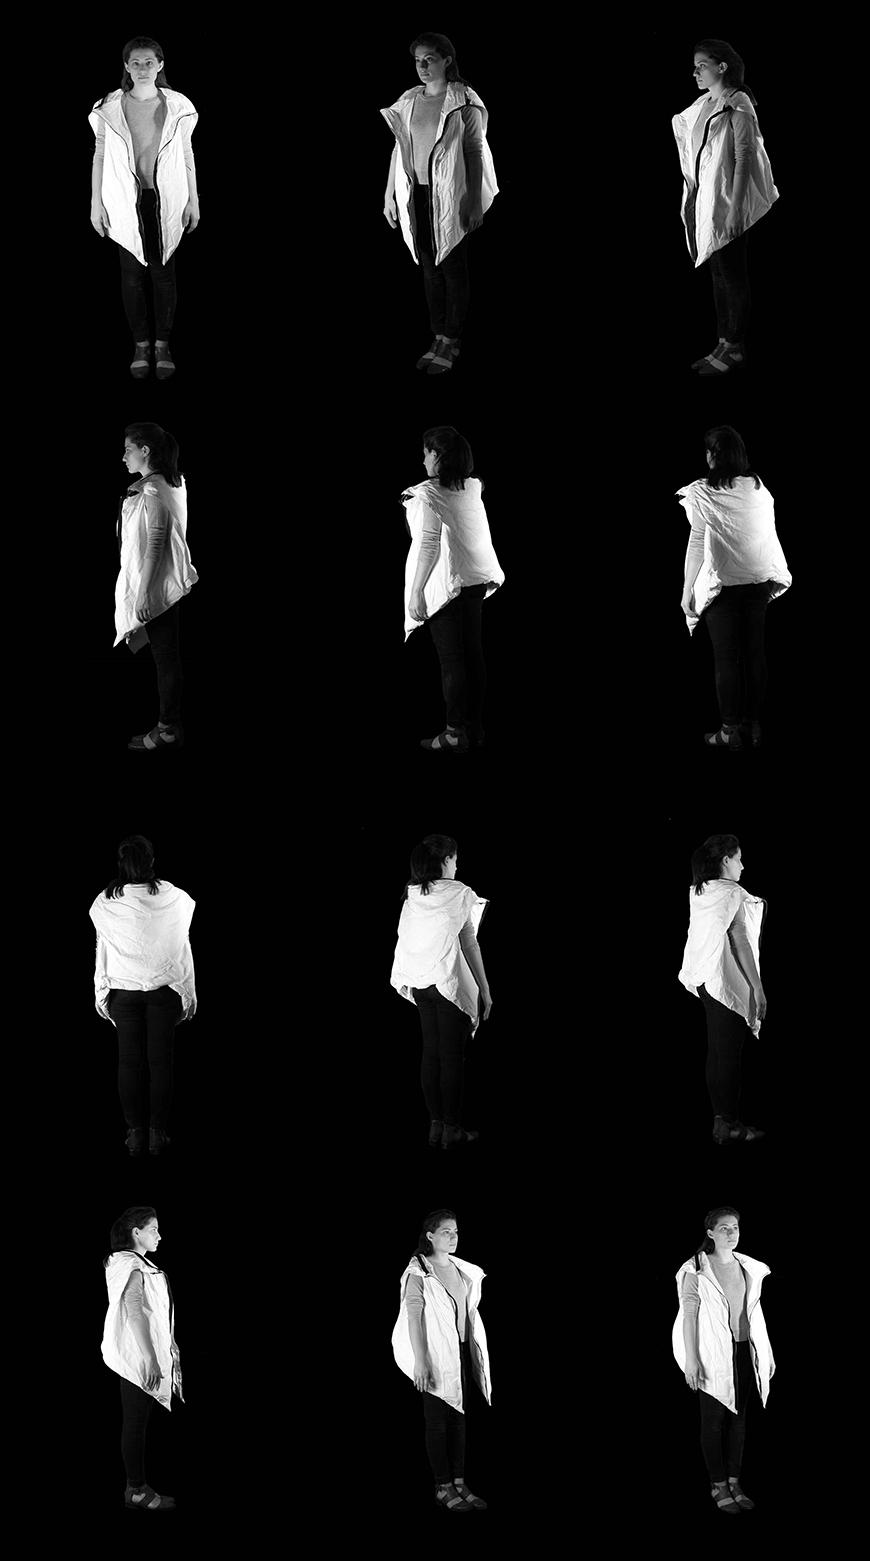 Composite photograph in black and white of person wearing the jacket in 12 different angles, showing 360 degree view of the jacket.